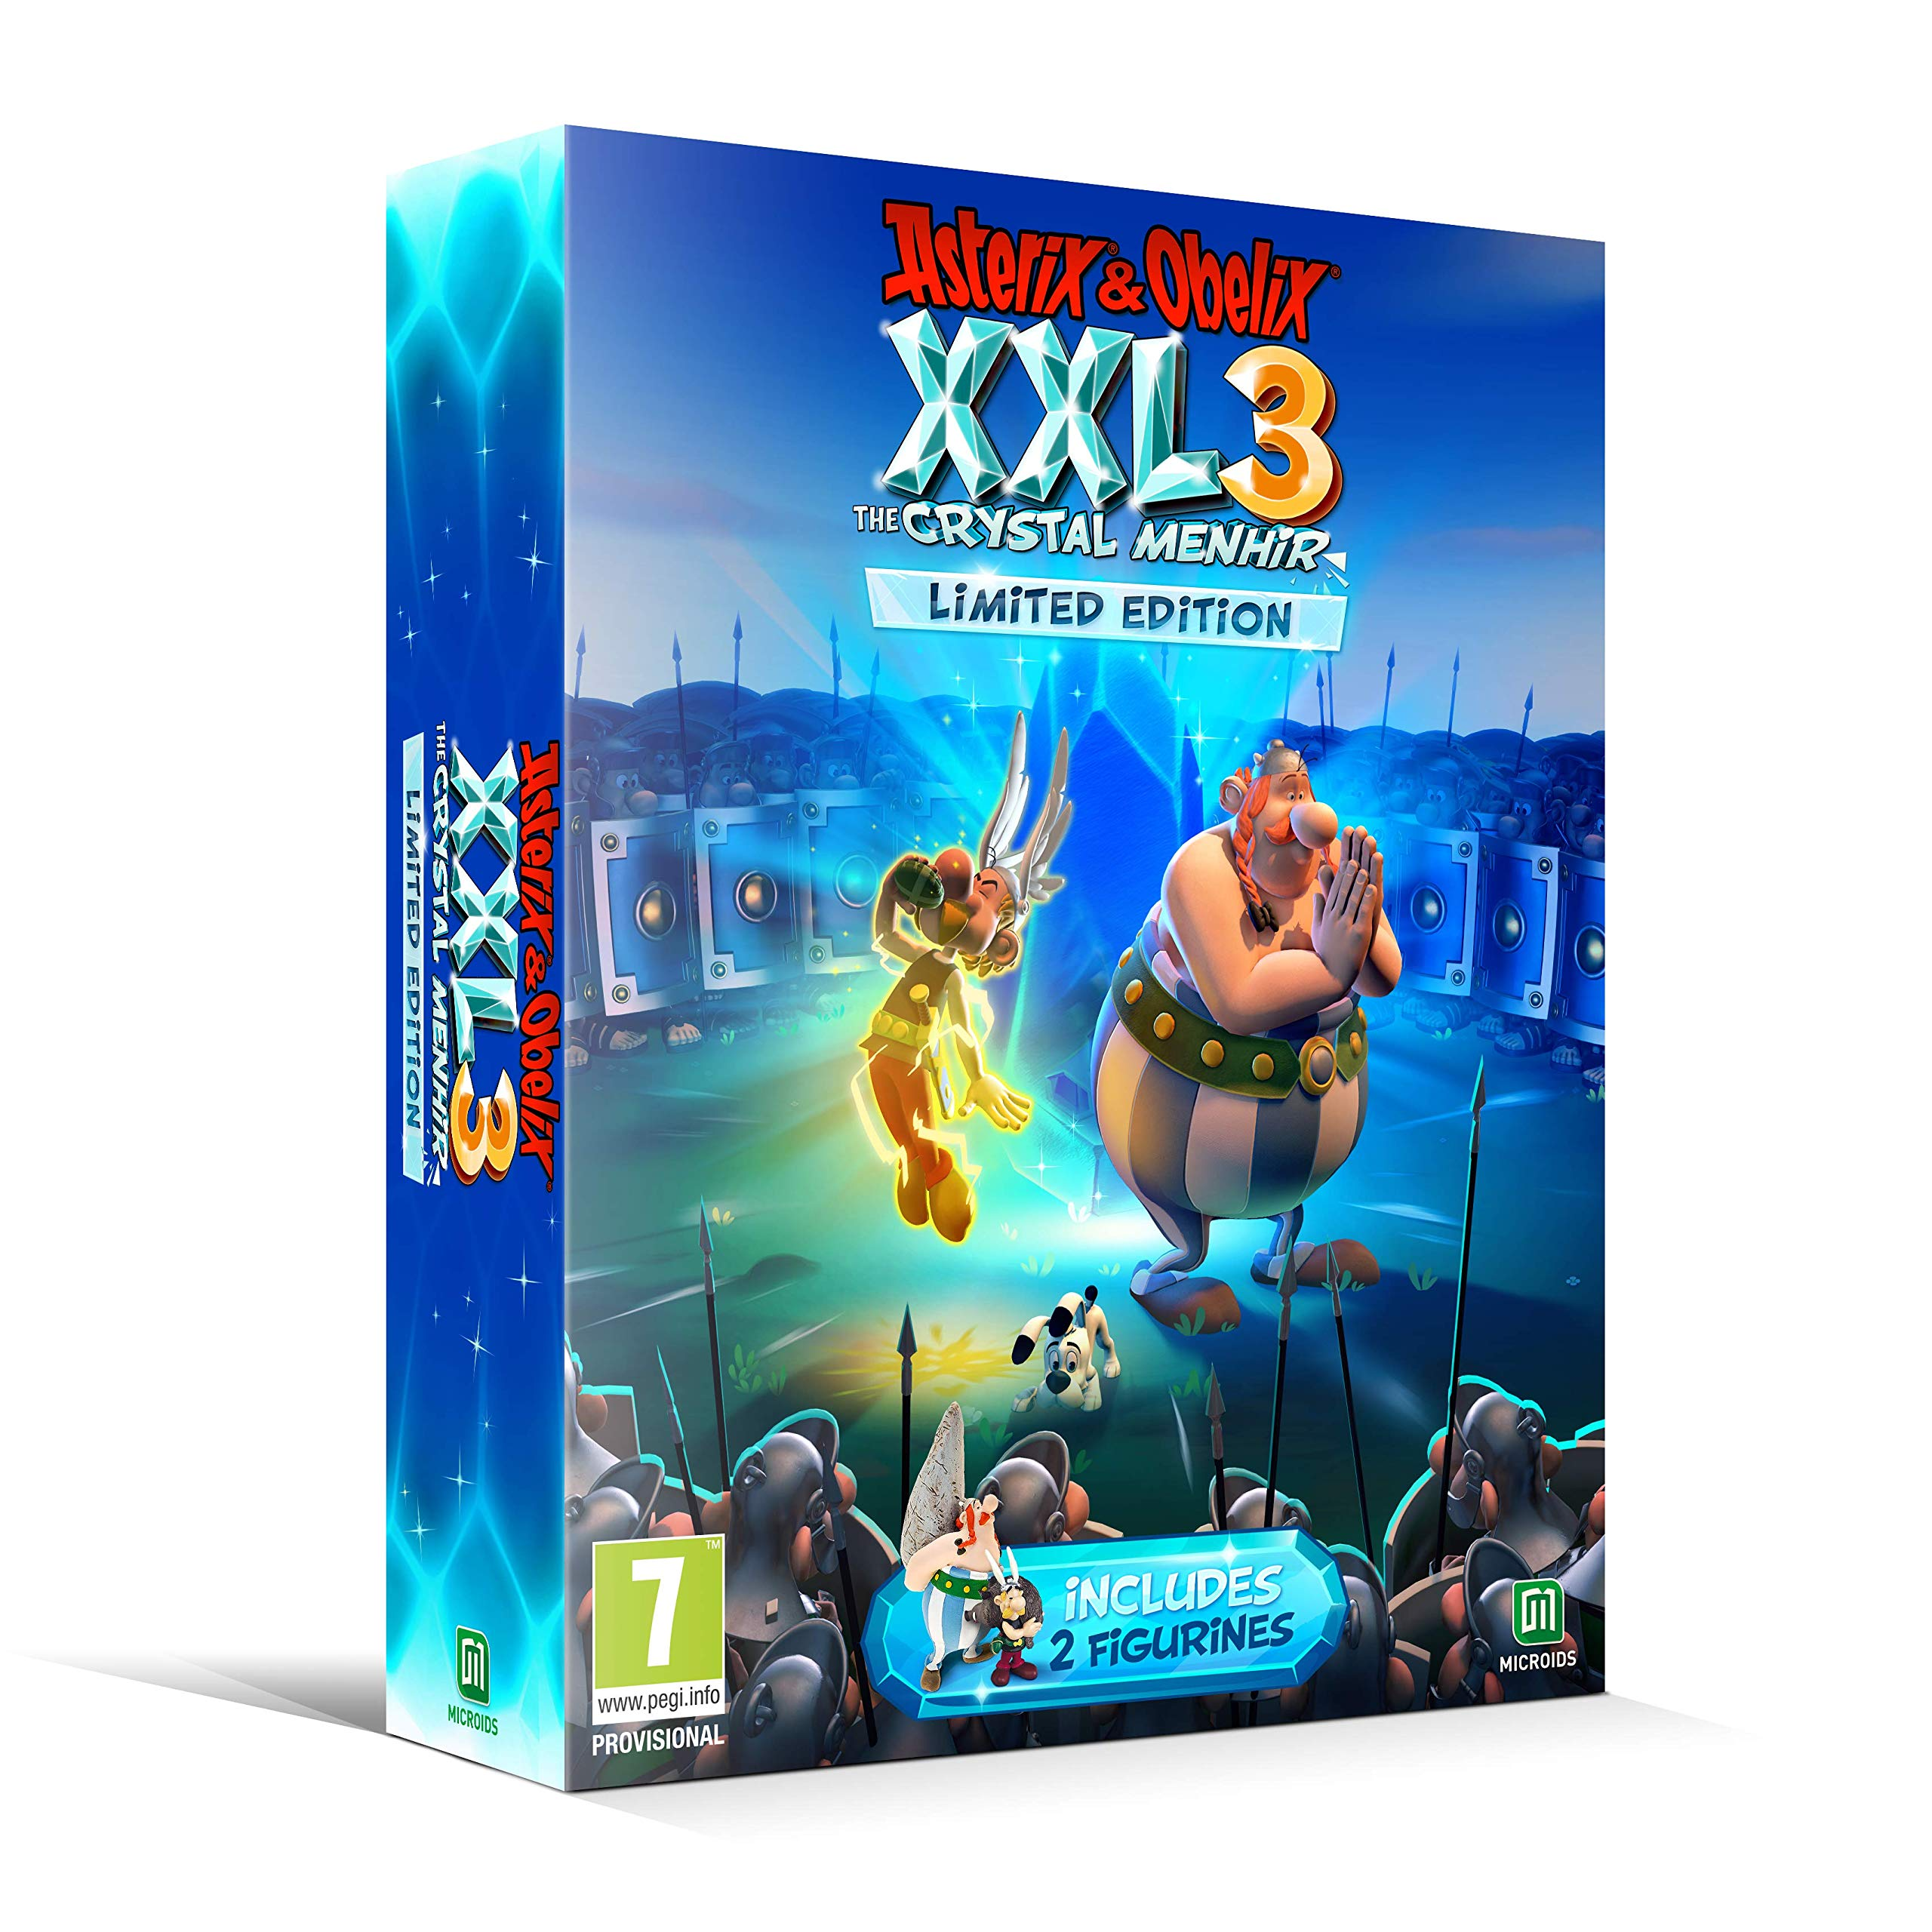 Asterix and Obelix XXL 3 The Crystal Menhir Limited Edition